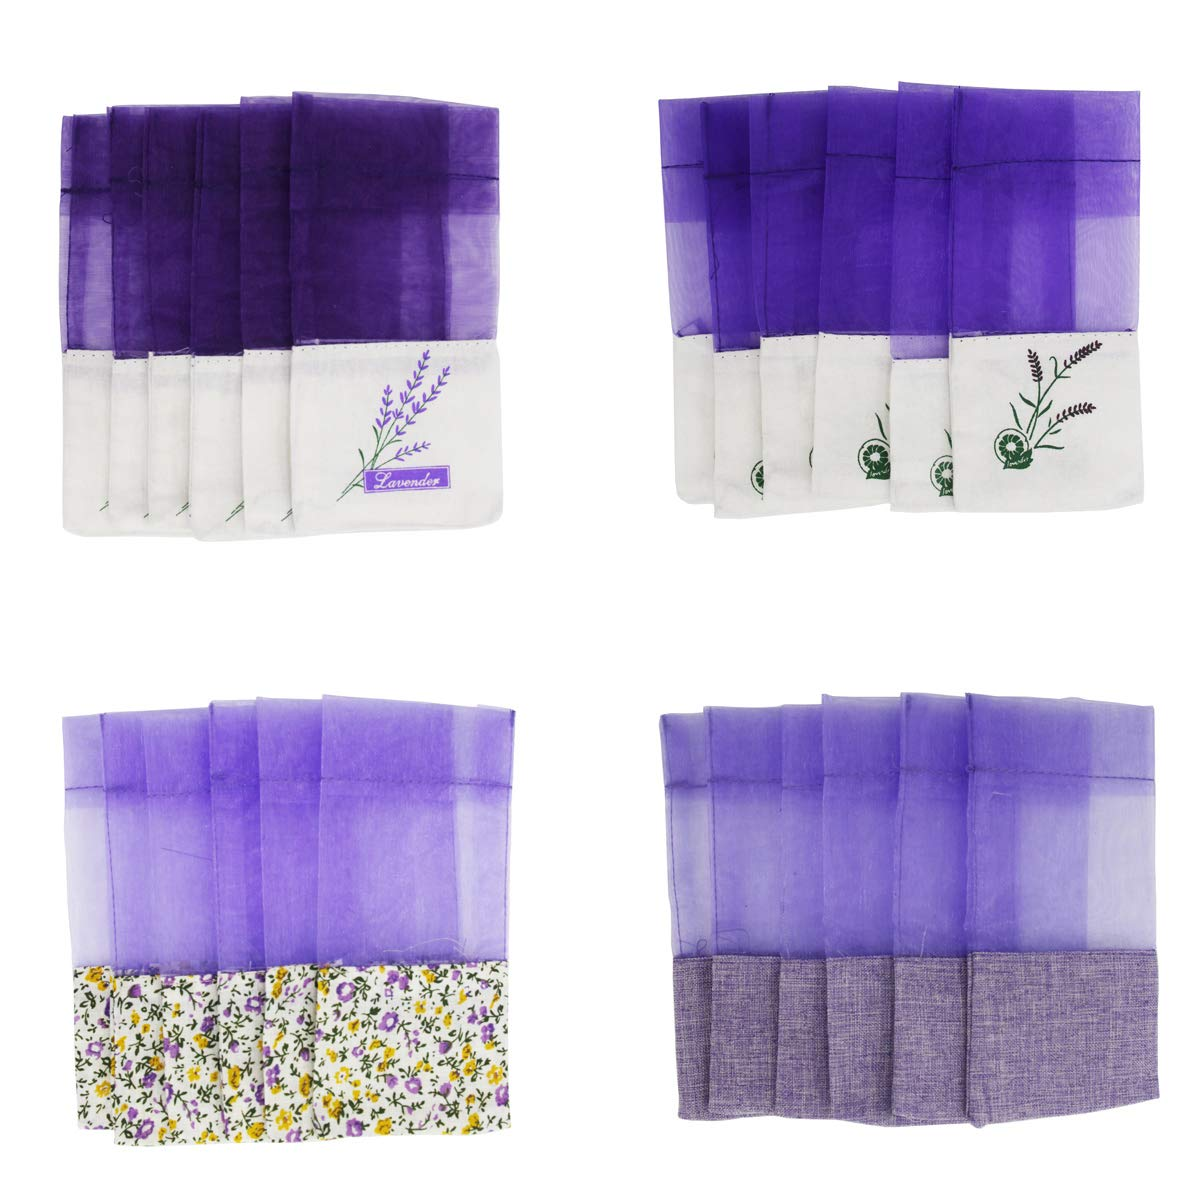 Lozom Sachet Empty Bags Purple Gauze Cotton-ramie Sacks Lavender, Spice Herbs (24pcs)